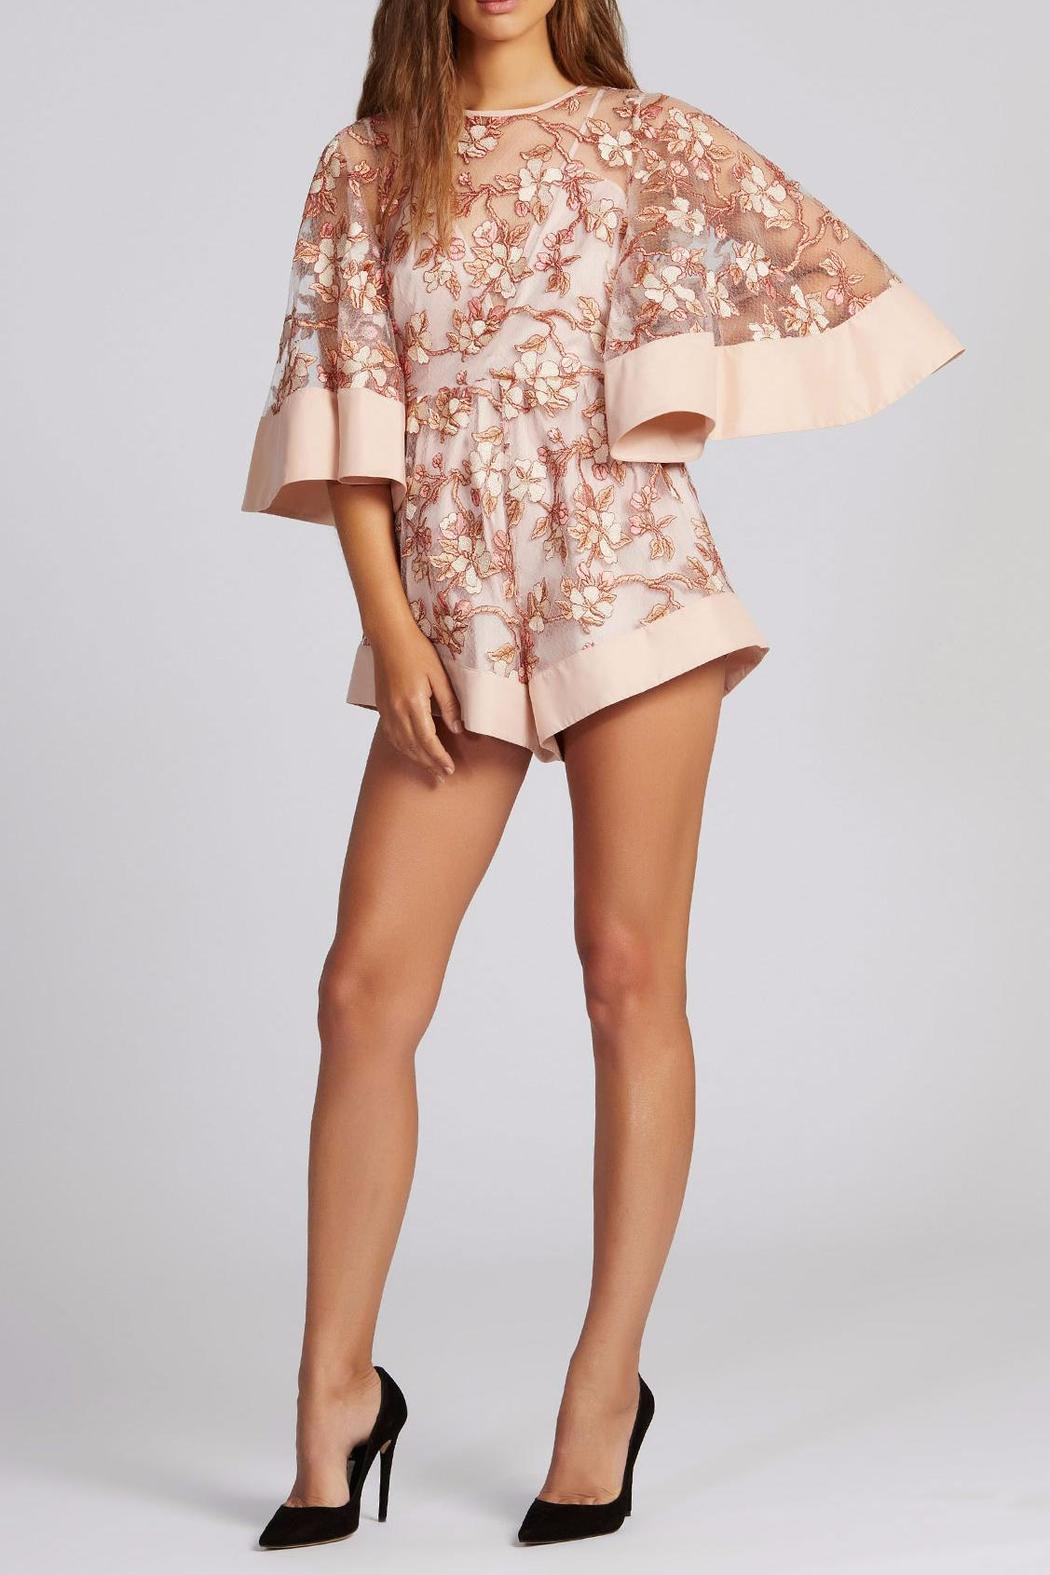 0899b415247 Alice McCall Fact Fiction Romper from Queensland by Soho Girl ...